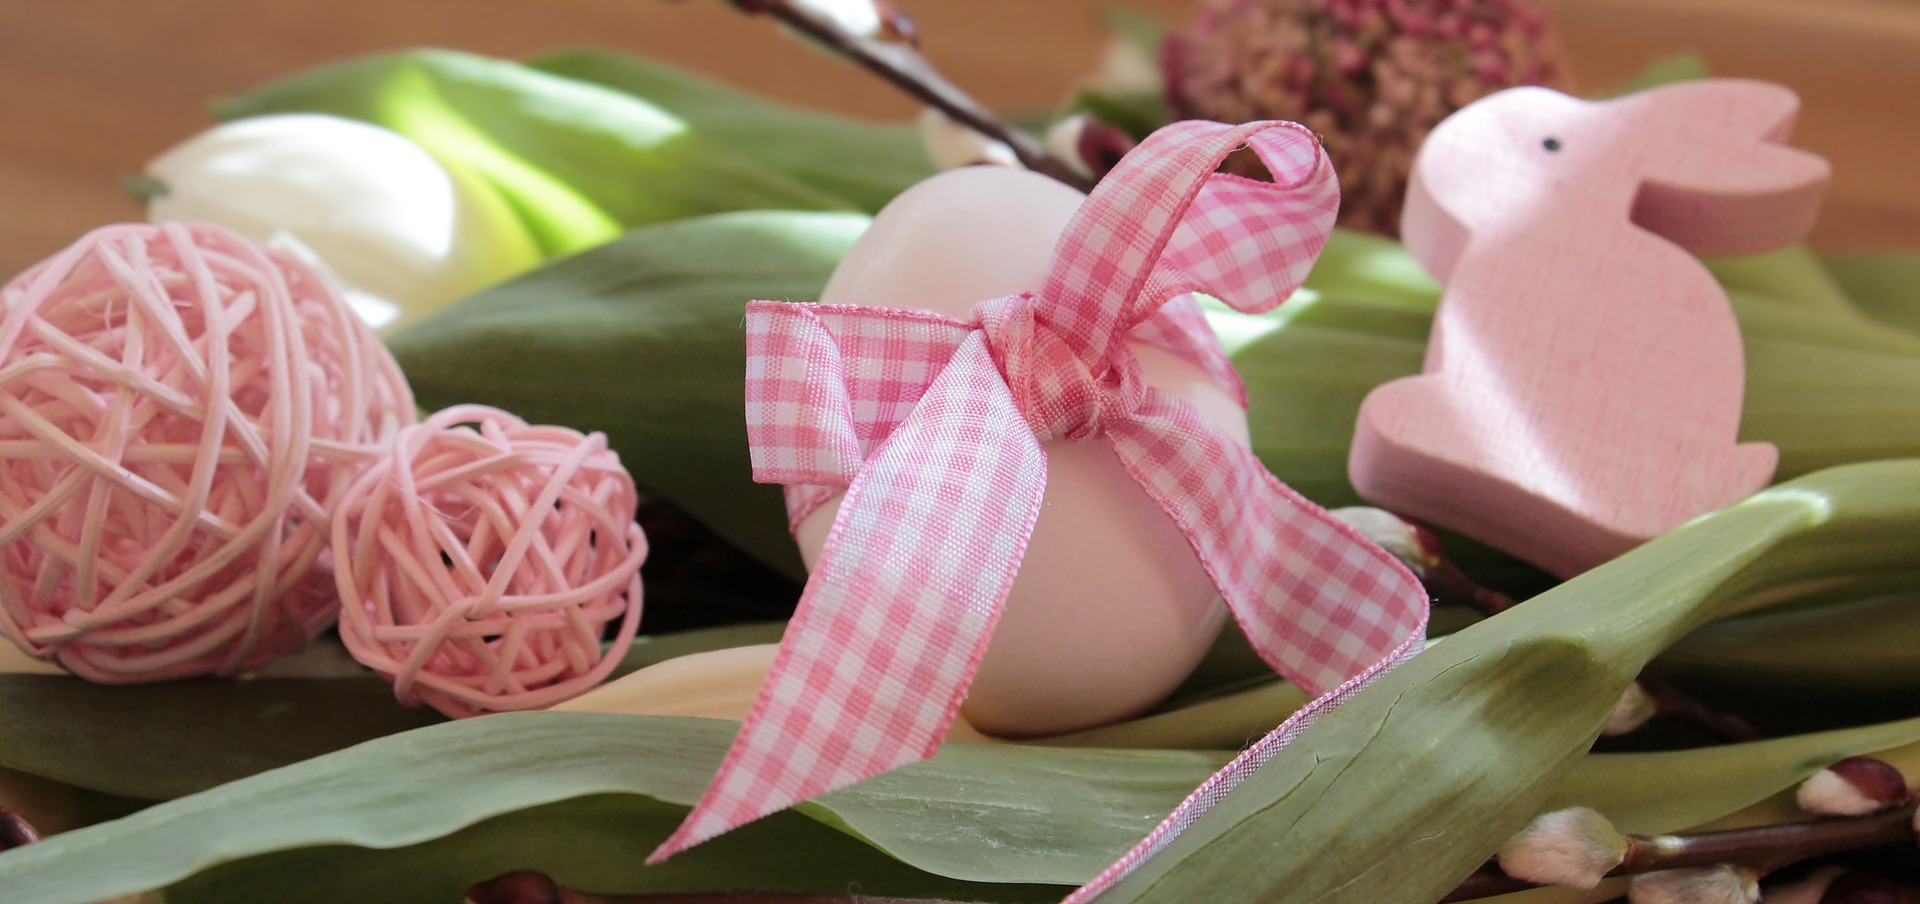 Easter Facts - Annual Spend